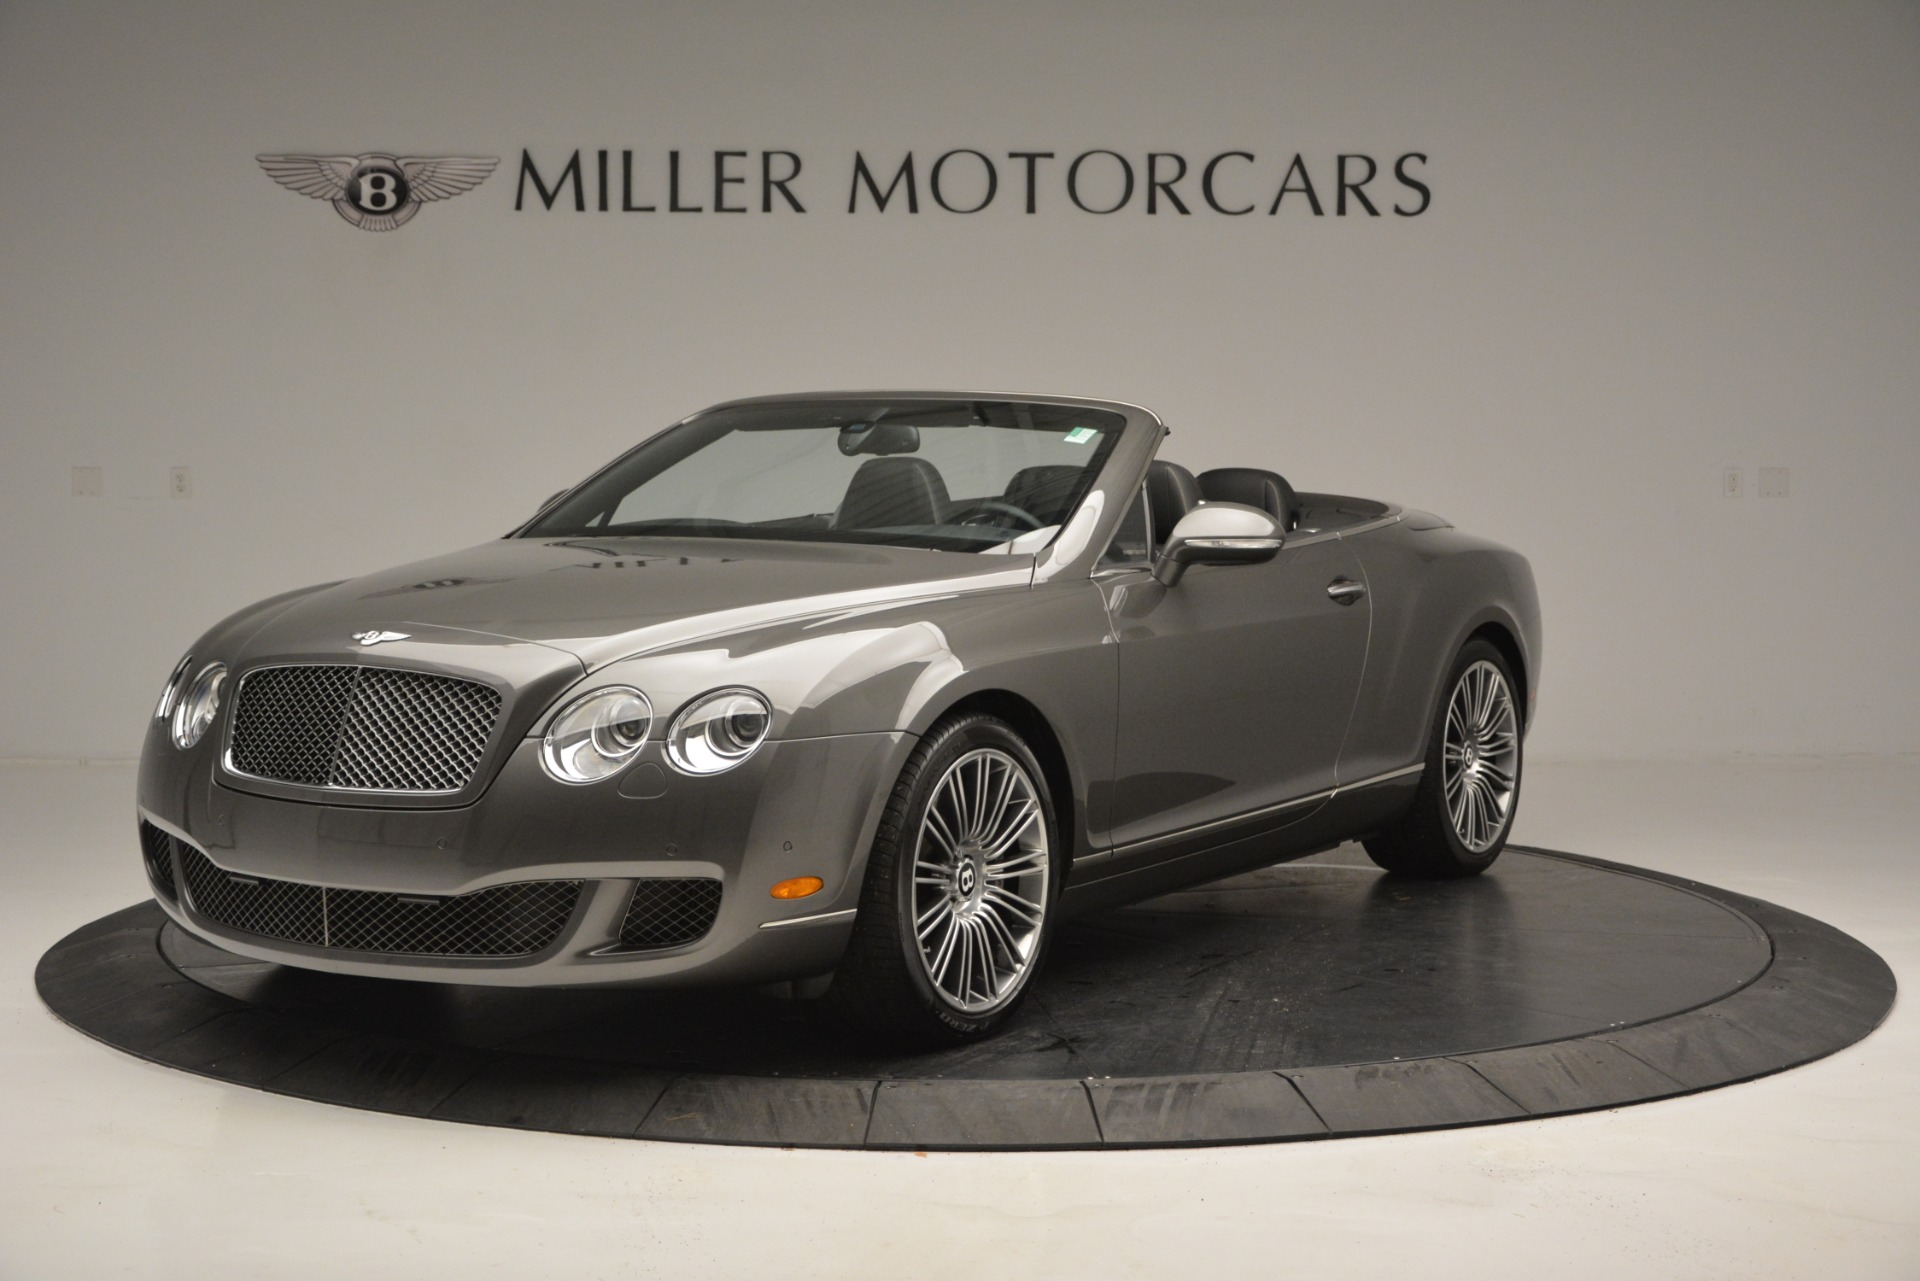 Used 2010 Bentley Continental GT Speed for sale Sold at Alfa Romeo of Westport in Westport CT 06880 1